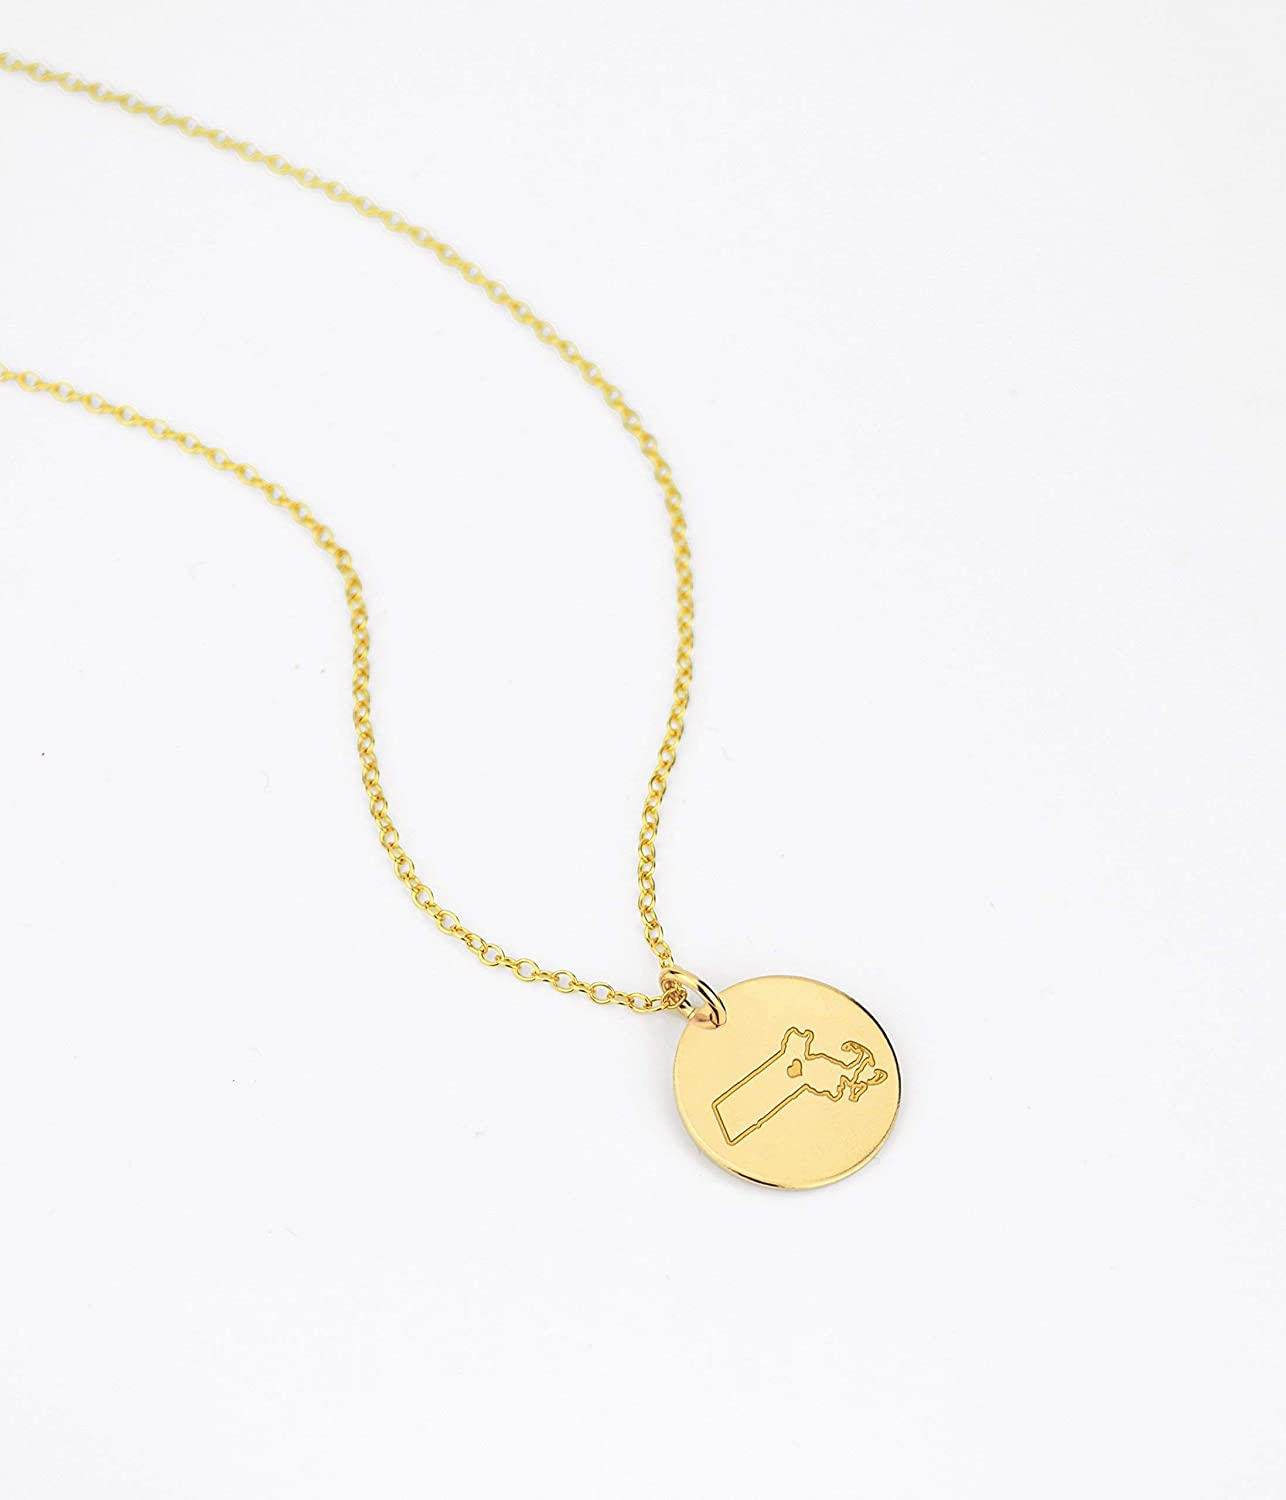 Engrave Gold Rose Gold Sterling Silver Jewelry Massachusetts Necklace